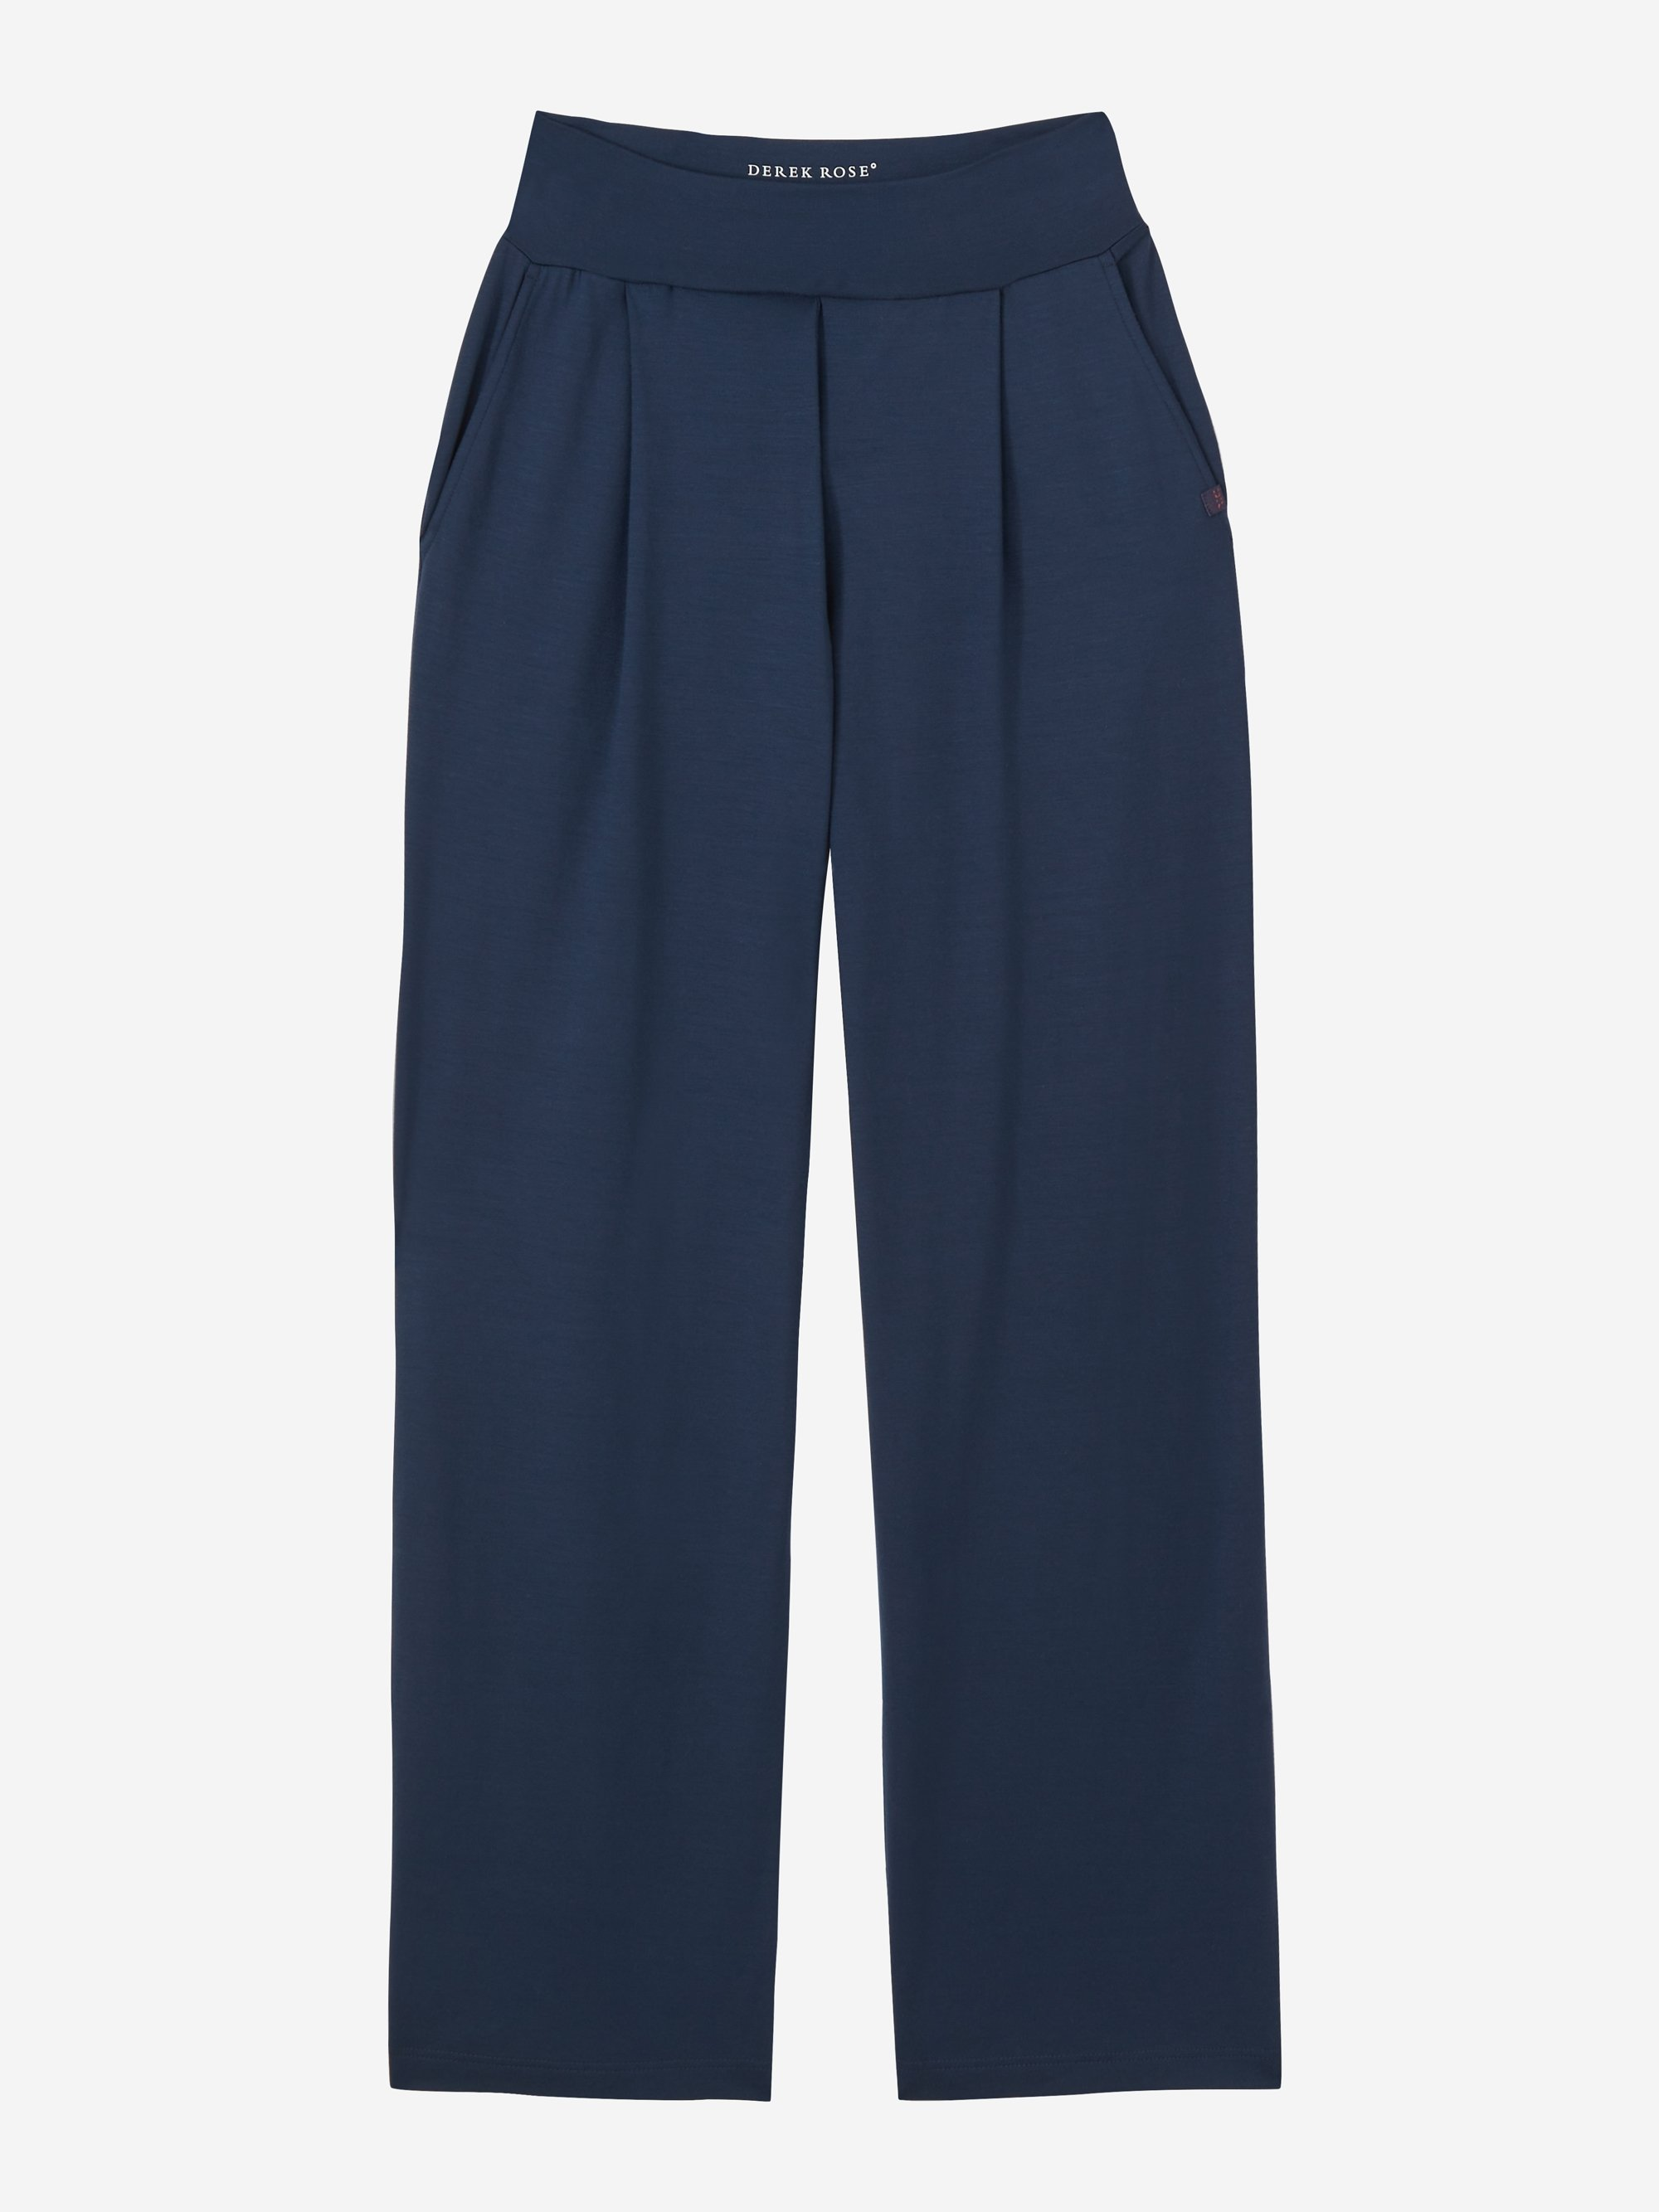 Women's Jersey Trousers Basel Micro Modal Stretch Navy